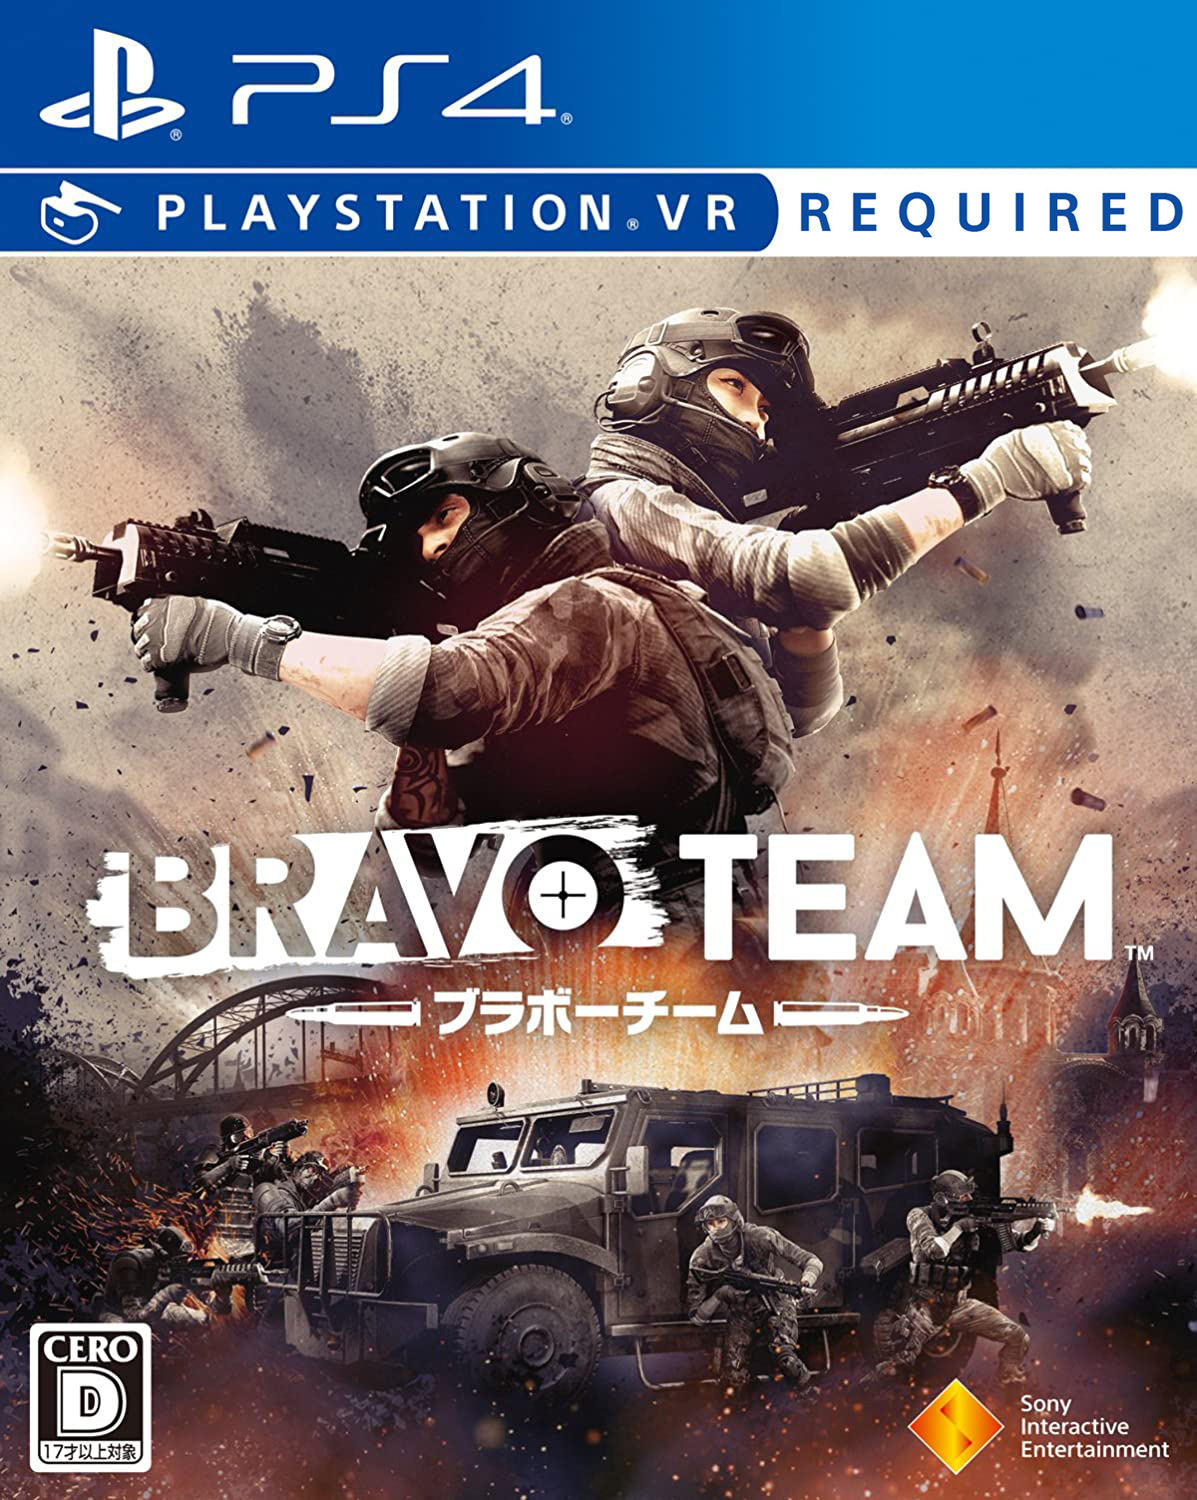 Bravo Team [PS4 Exclusive VR Only] 5.05 / 6.72 / 7.02 [EUR] (2018) [Русский] (v1.02)